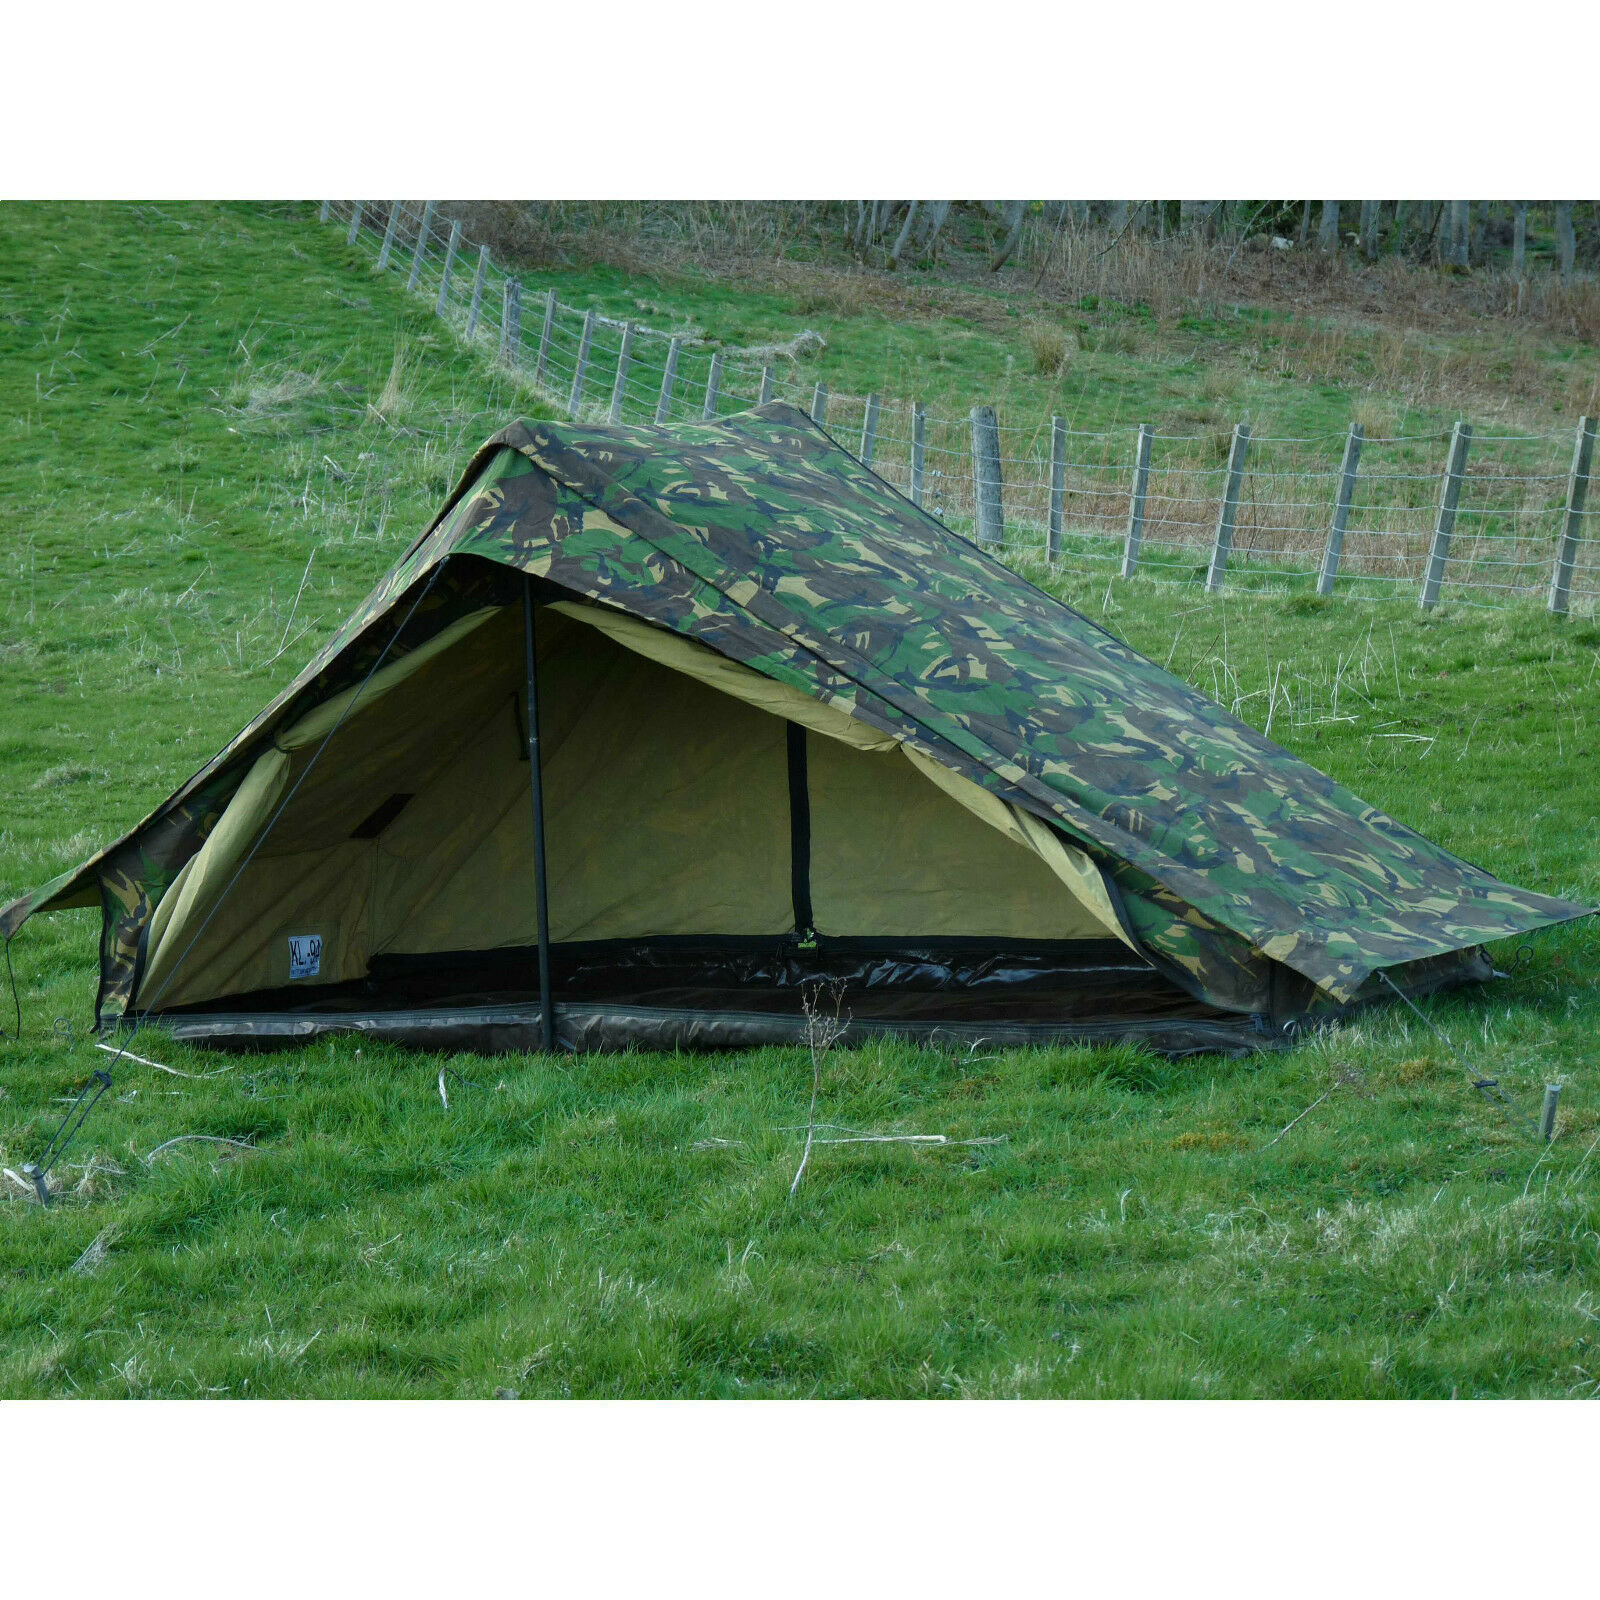 Dutch Army Canvas Tent - Woodland Camouflage One Man Camo Pup 1 Person